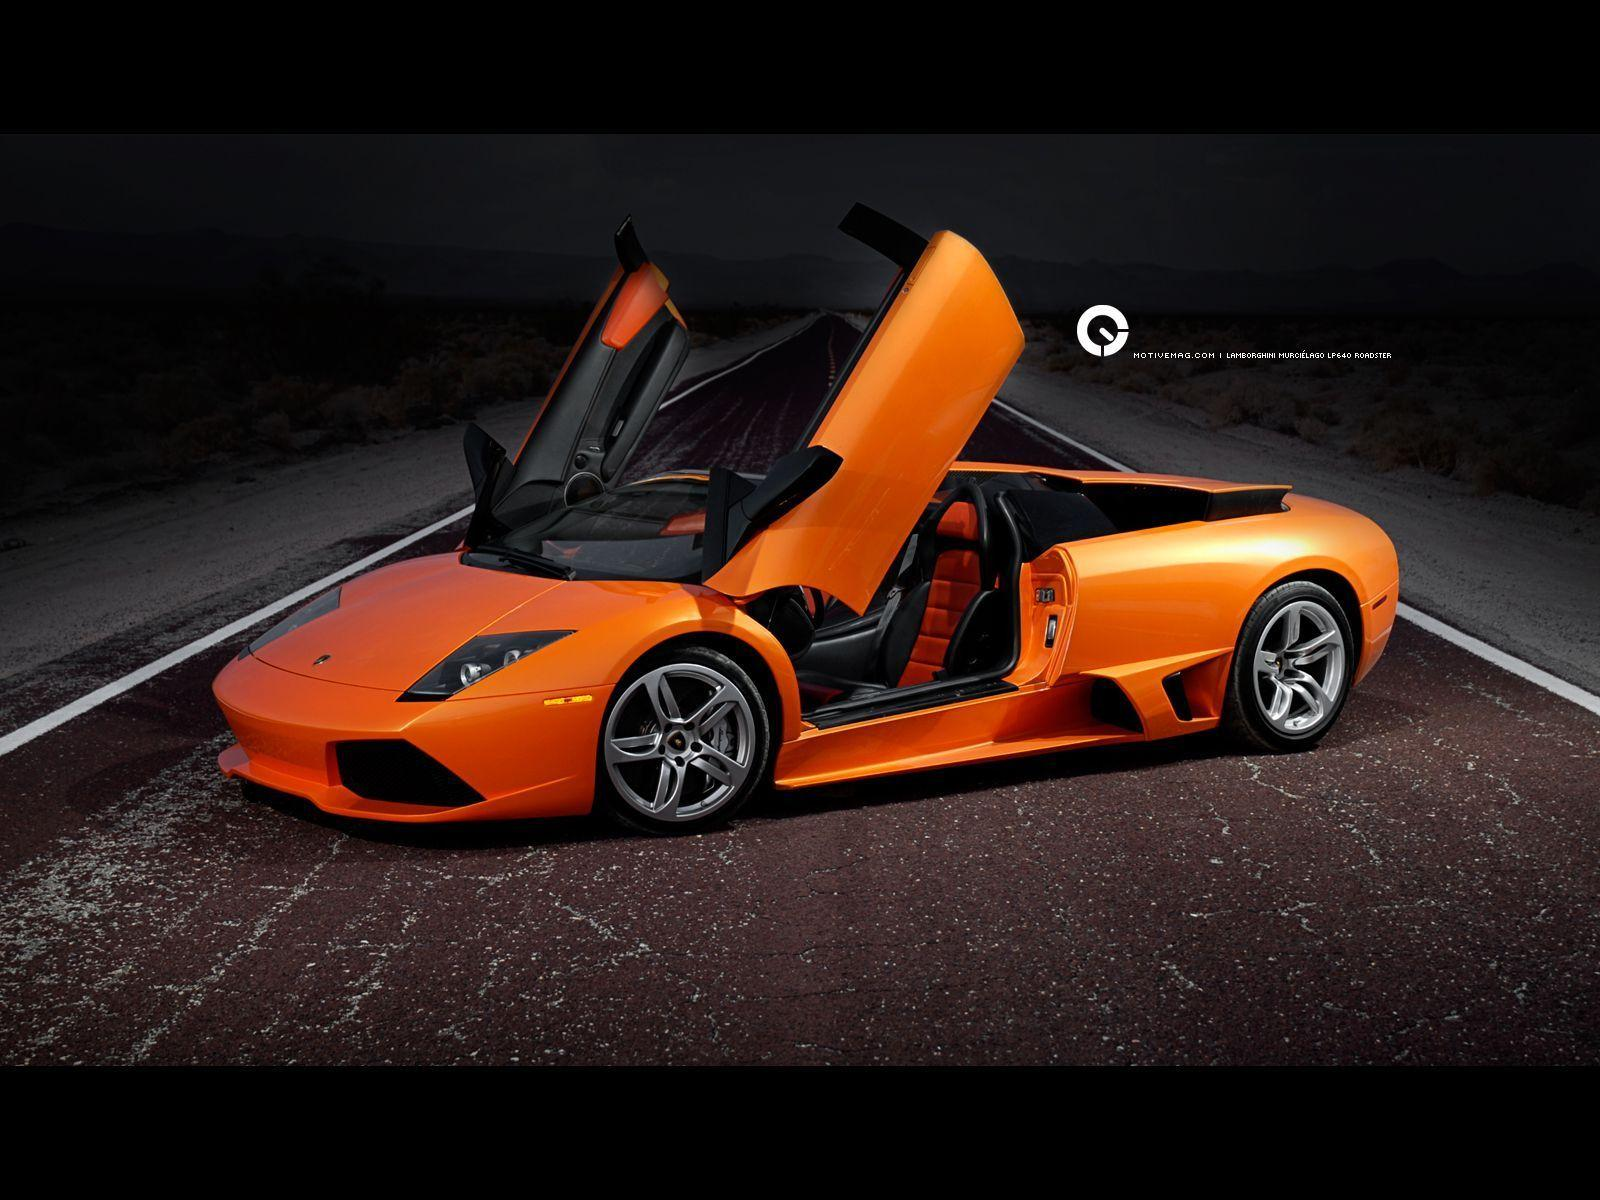 Wallpapers For > Cool Lamborghini Backgrounds For Computers